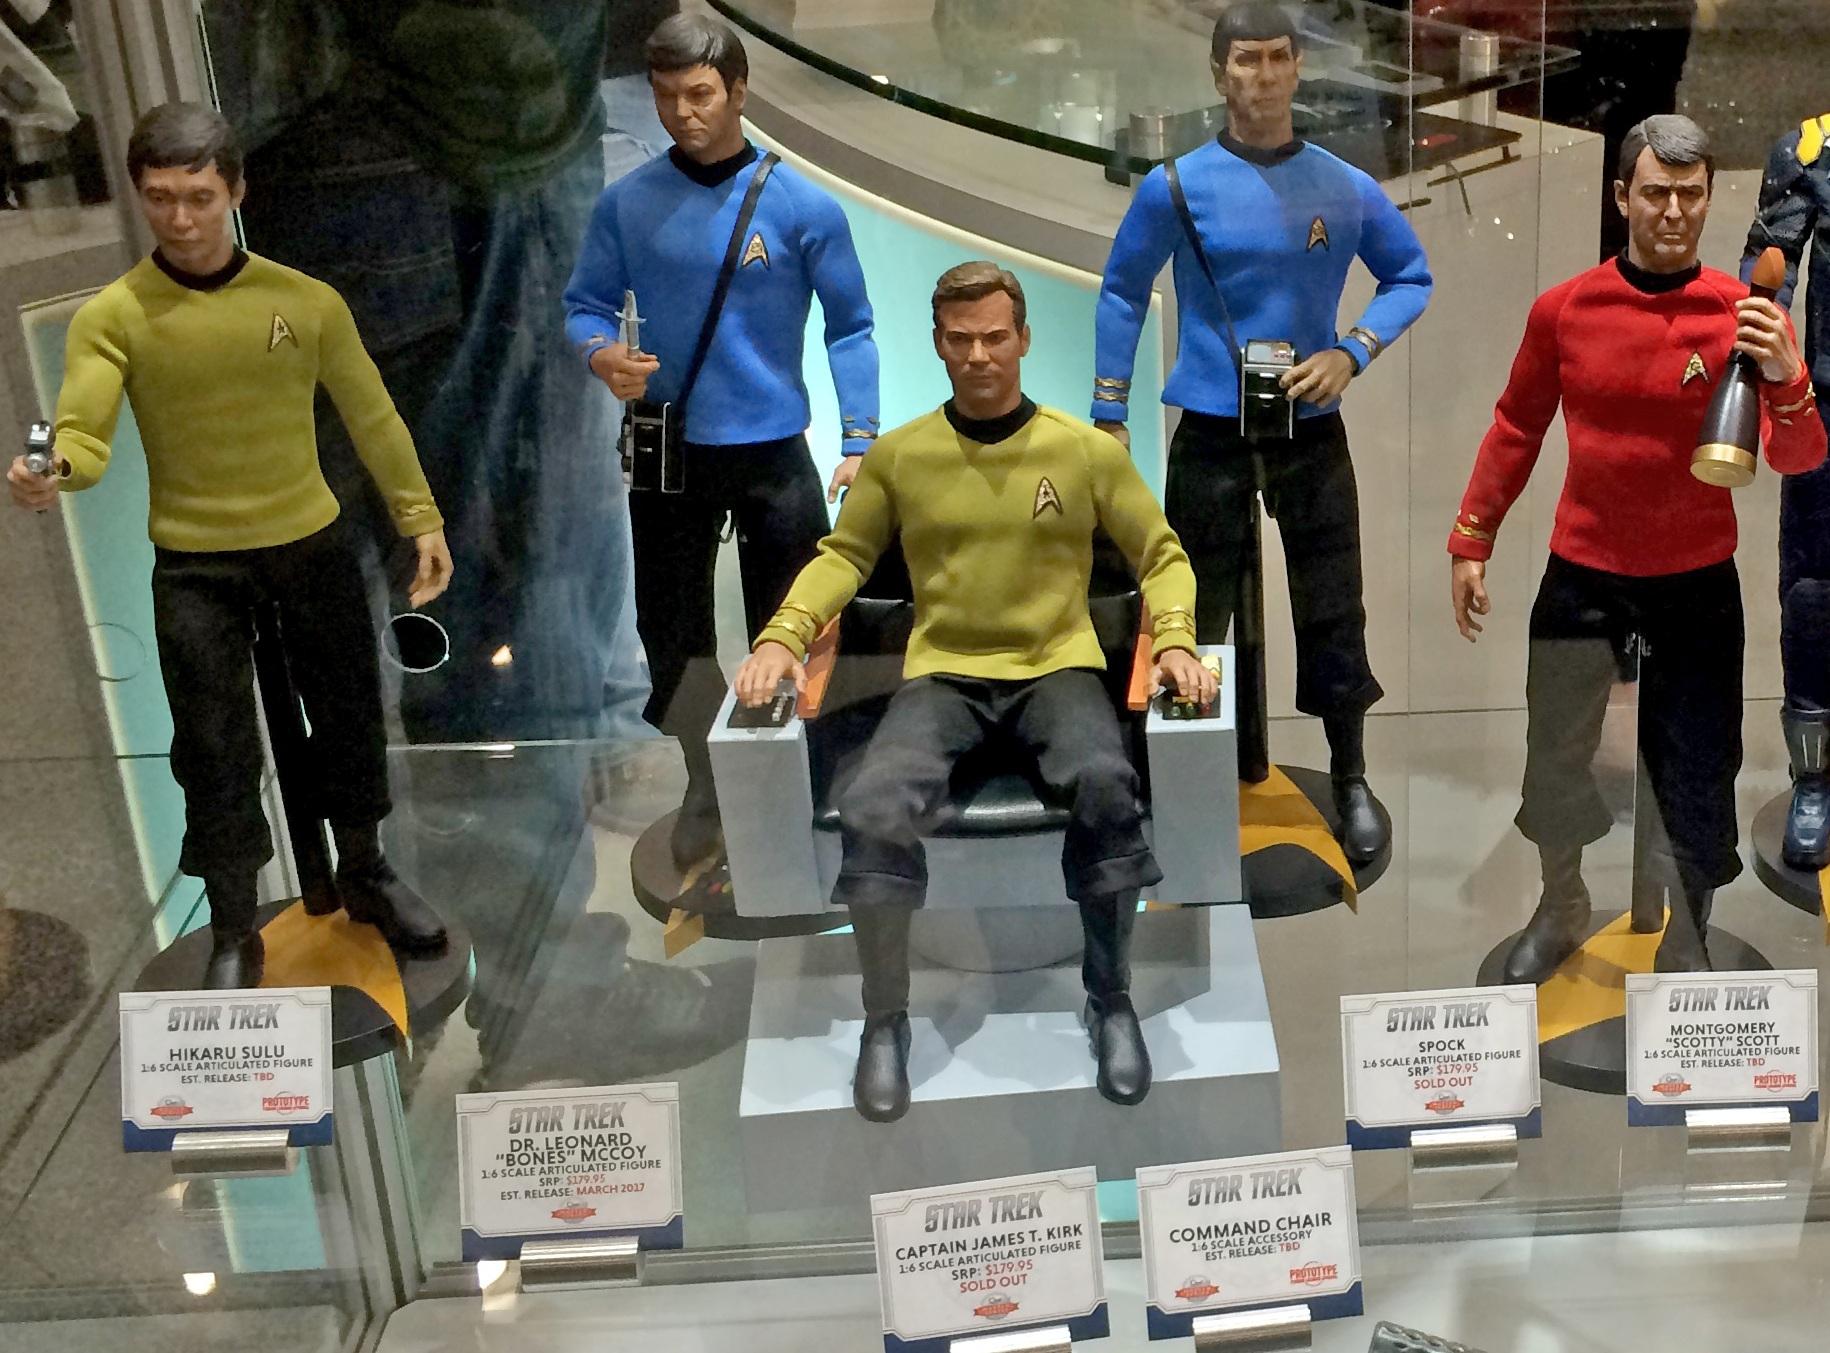 star trek captain s chair plans bed qmx unveils new tng and beyond 1 6 figures more adding sulu scotty to the tos line of